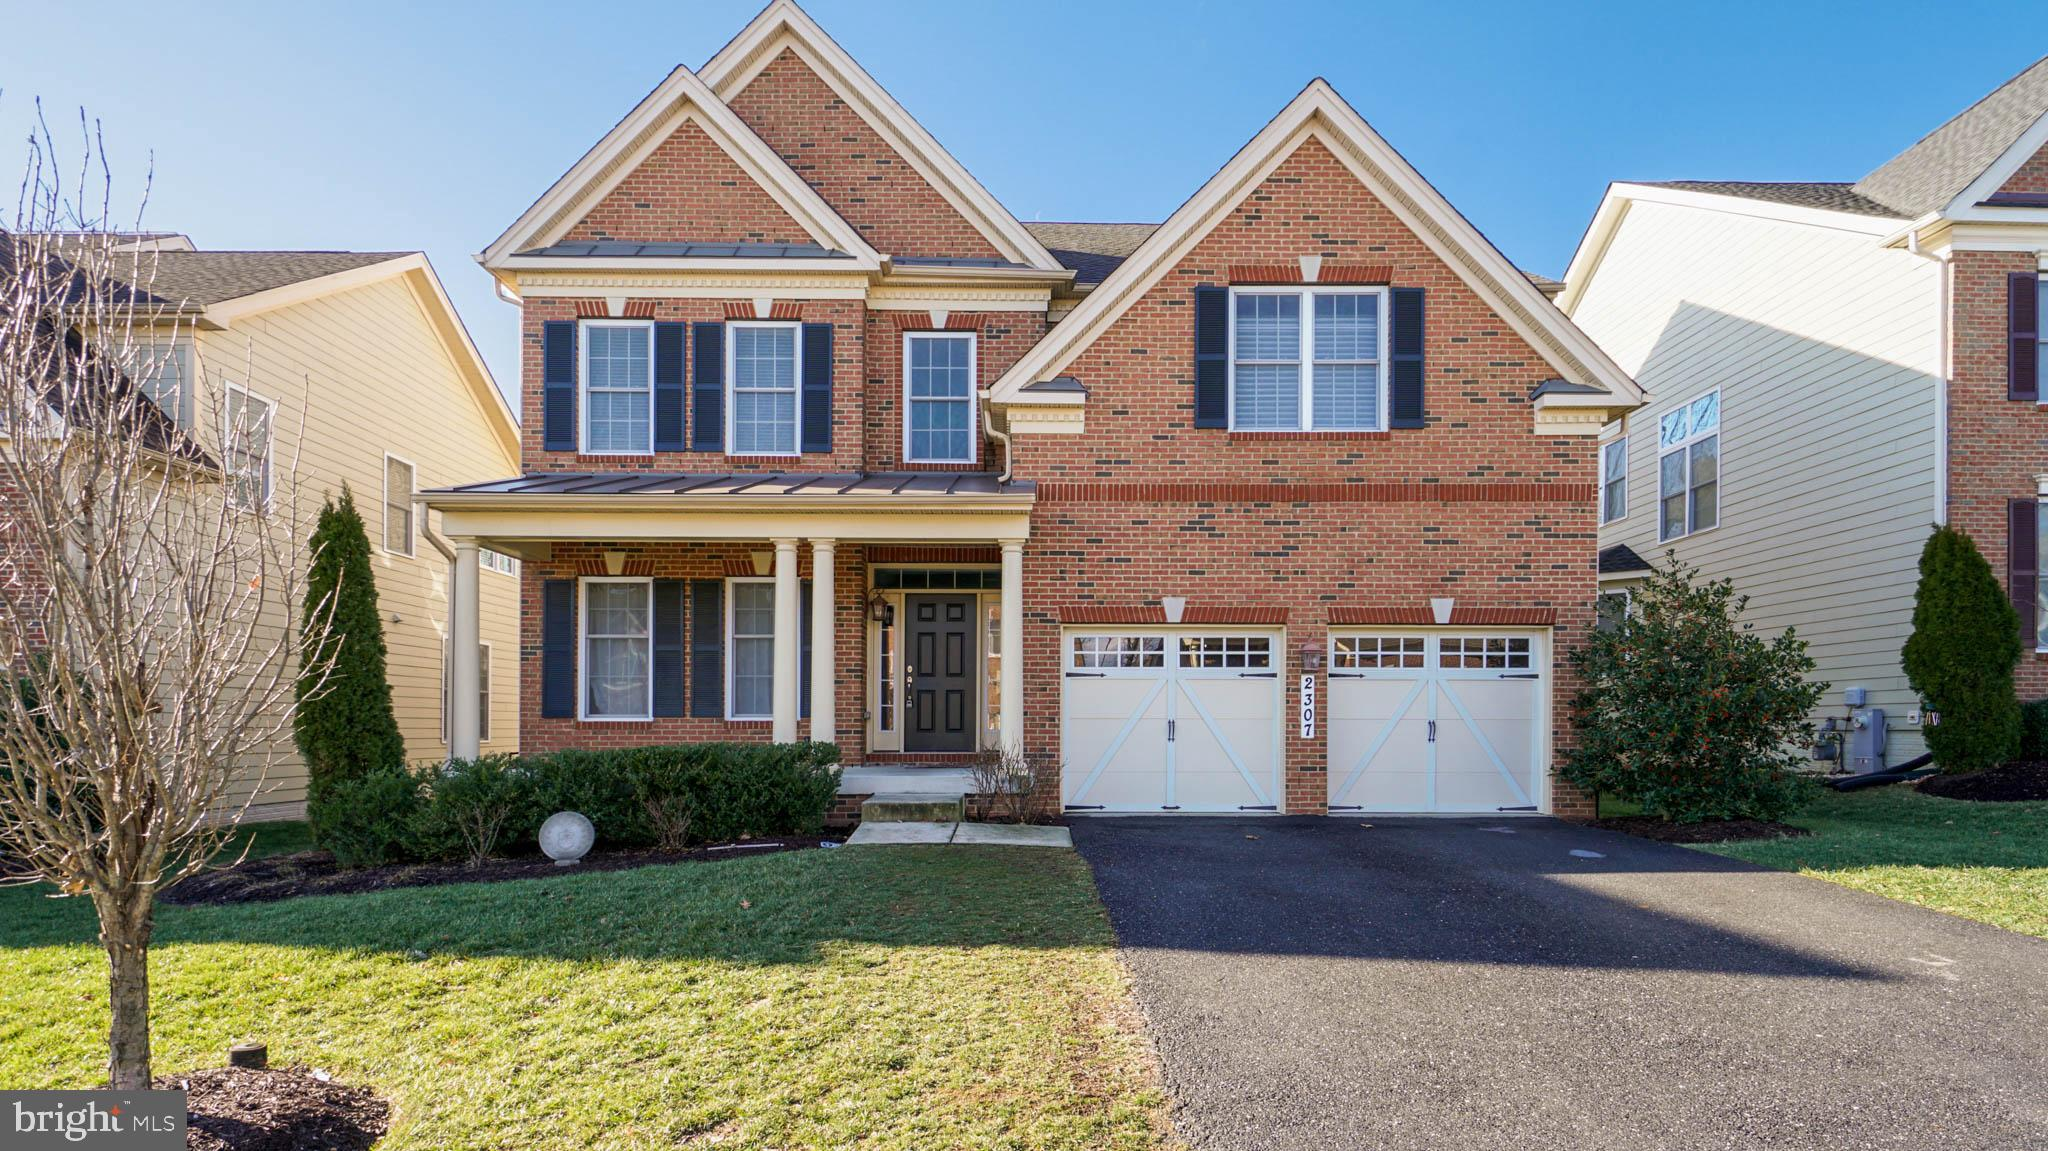 2307 SYCAMORE PLACE, HANOVER, MD 21076